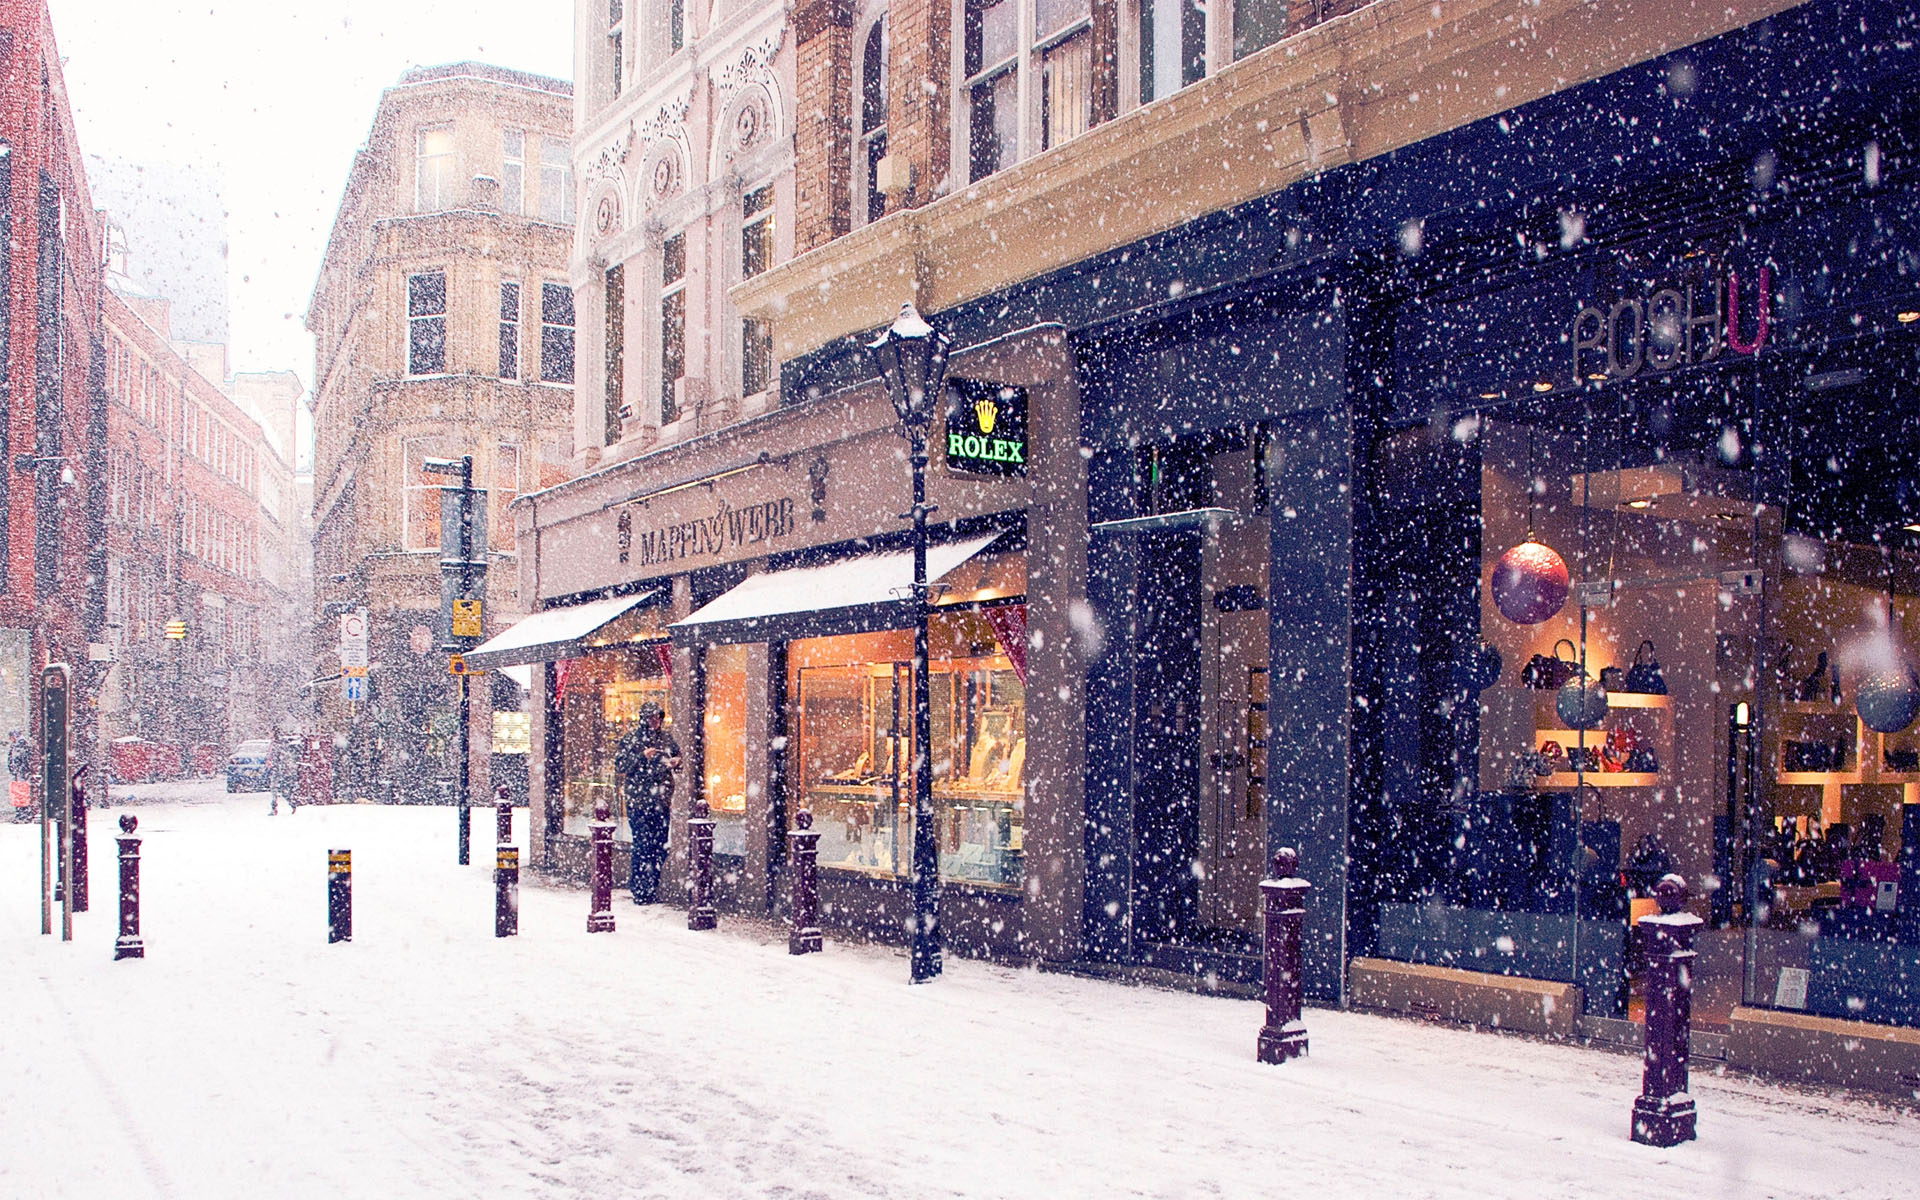 snow shopping on europe street hd wallpaper hd latest